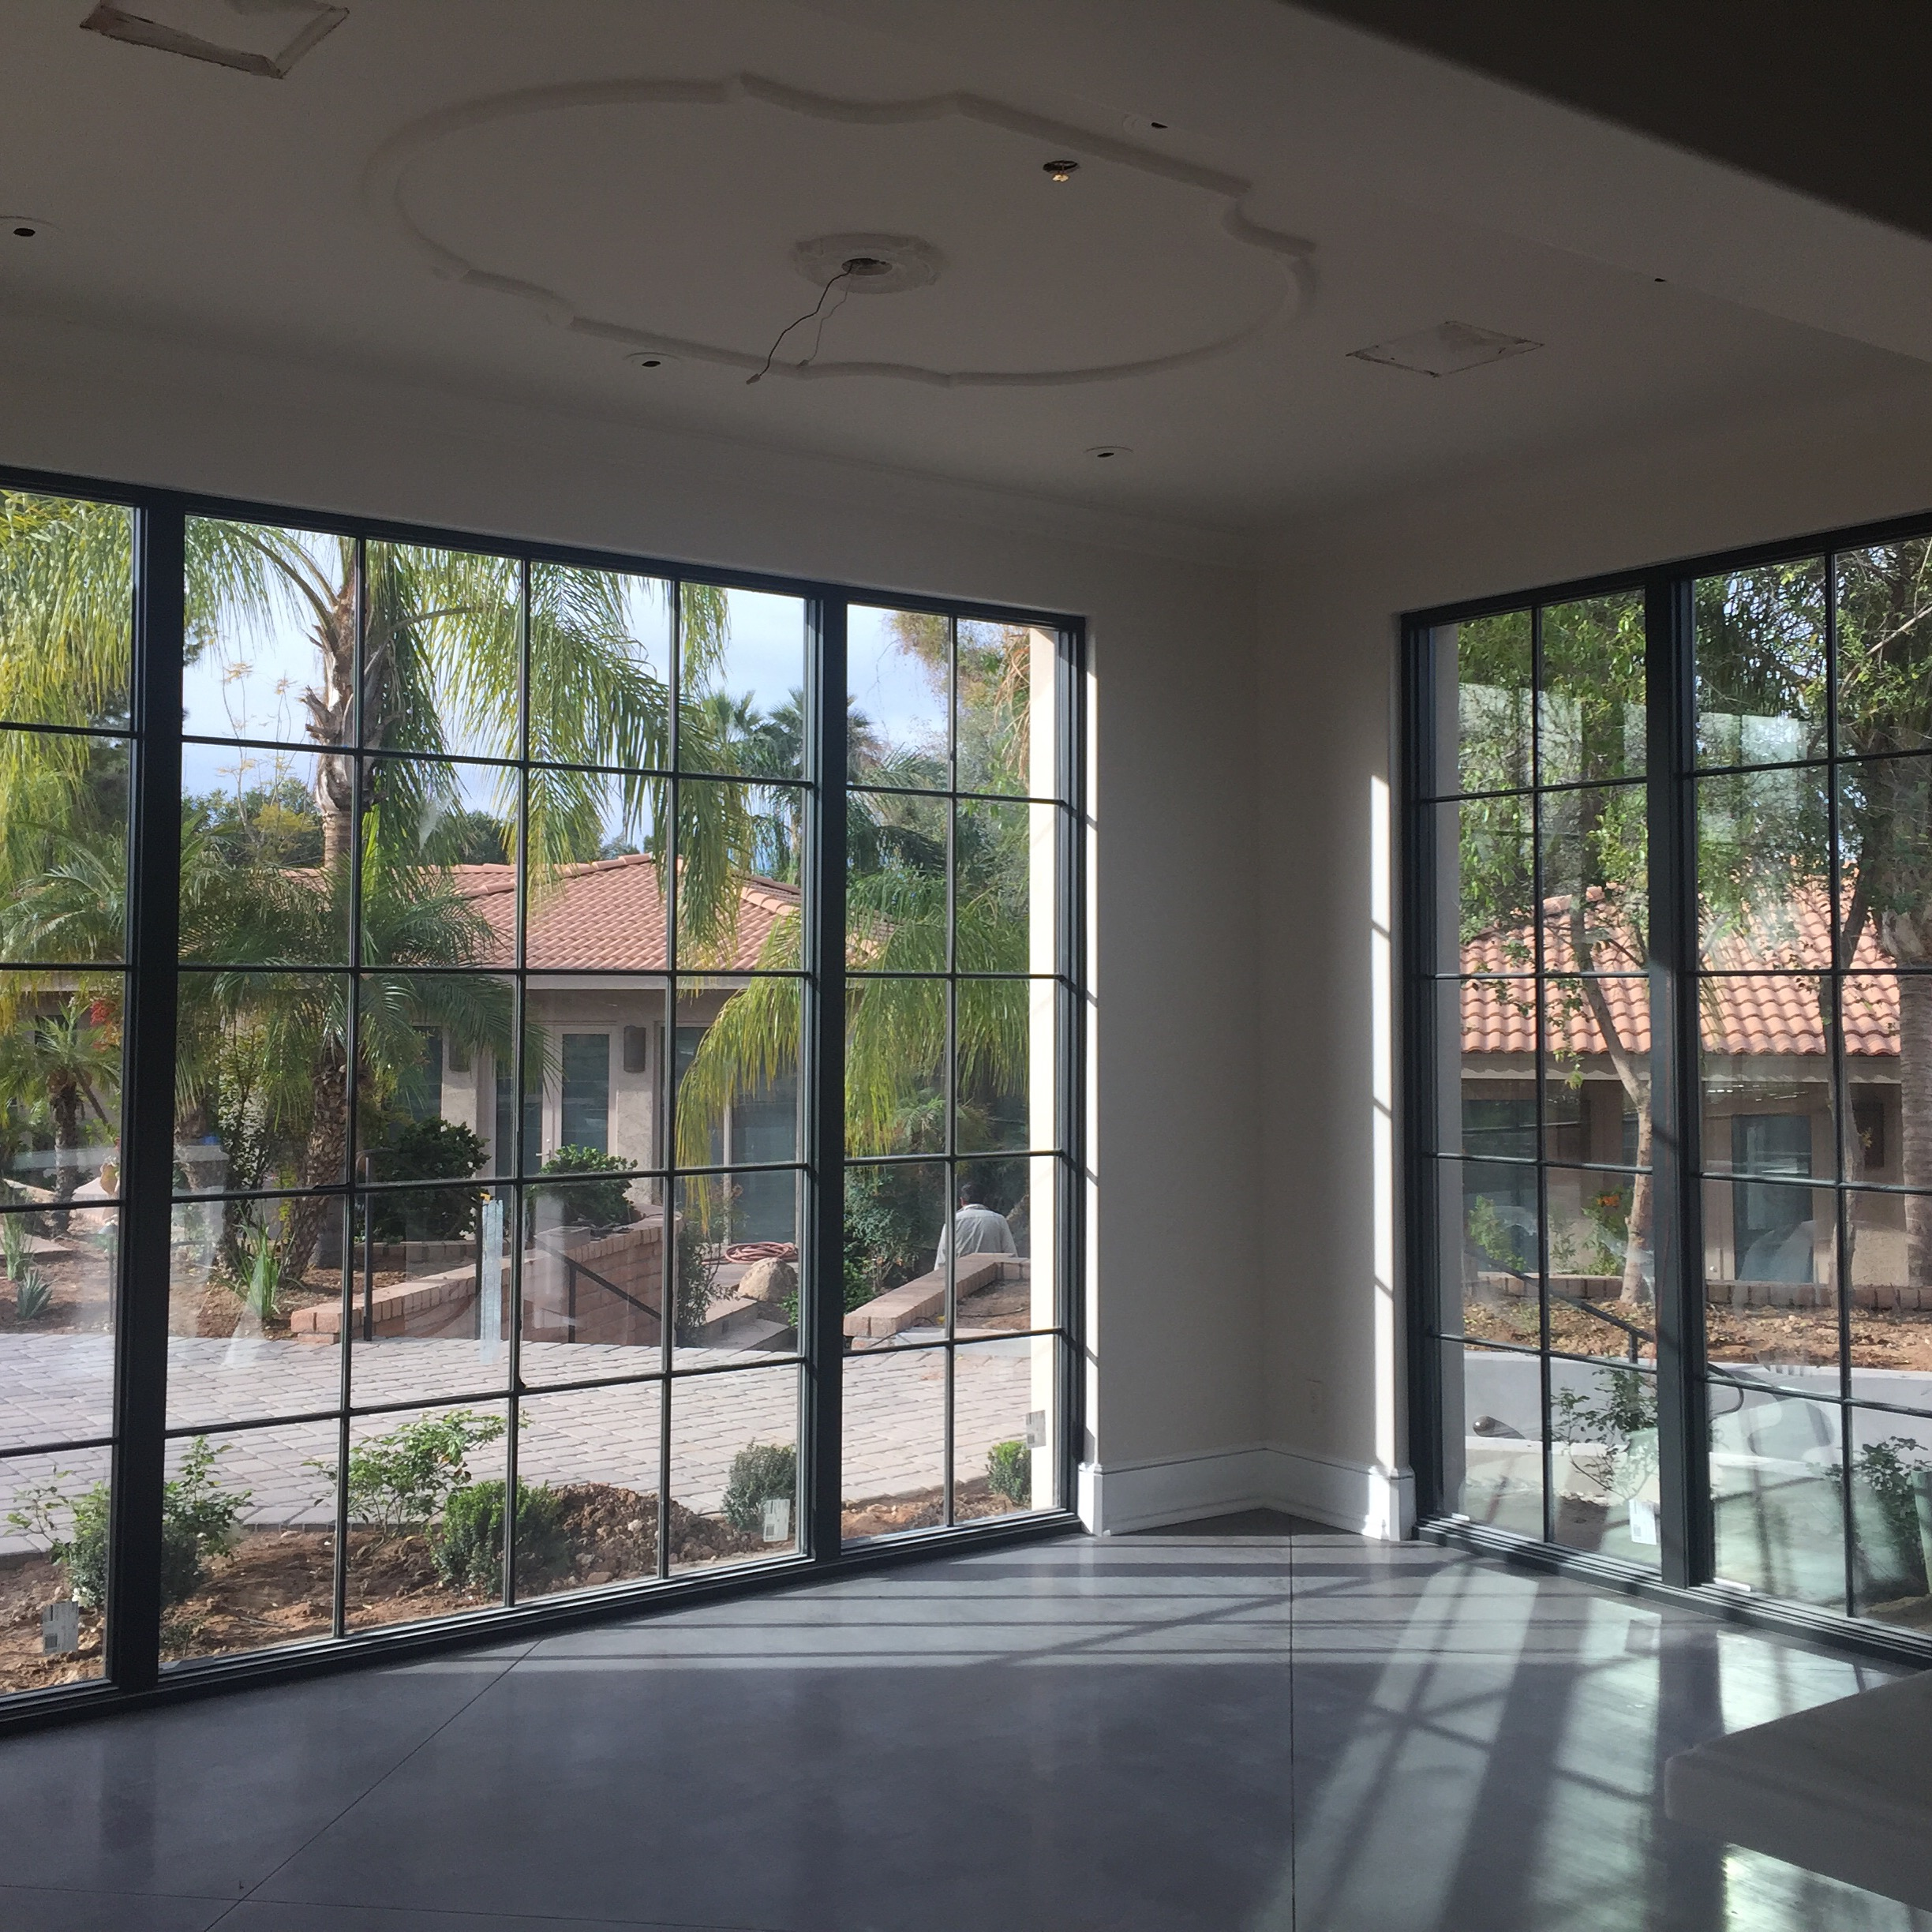 Breakfast Room nearing completion with this Candelaria Design ~ Earth and Images French Transitional home on the Paradise Valley Country Club built by Desert Star Construction.